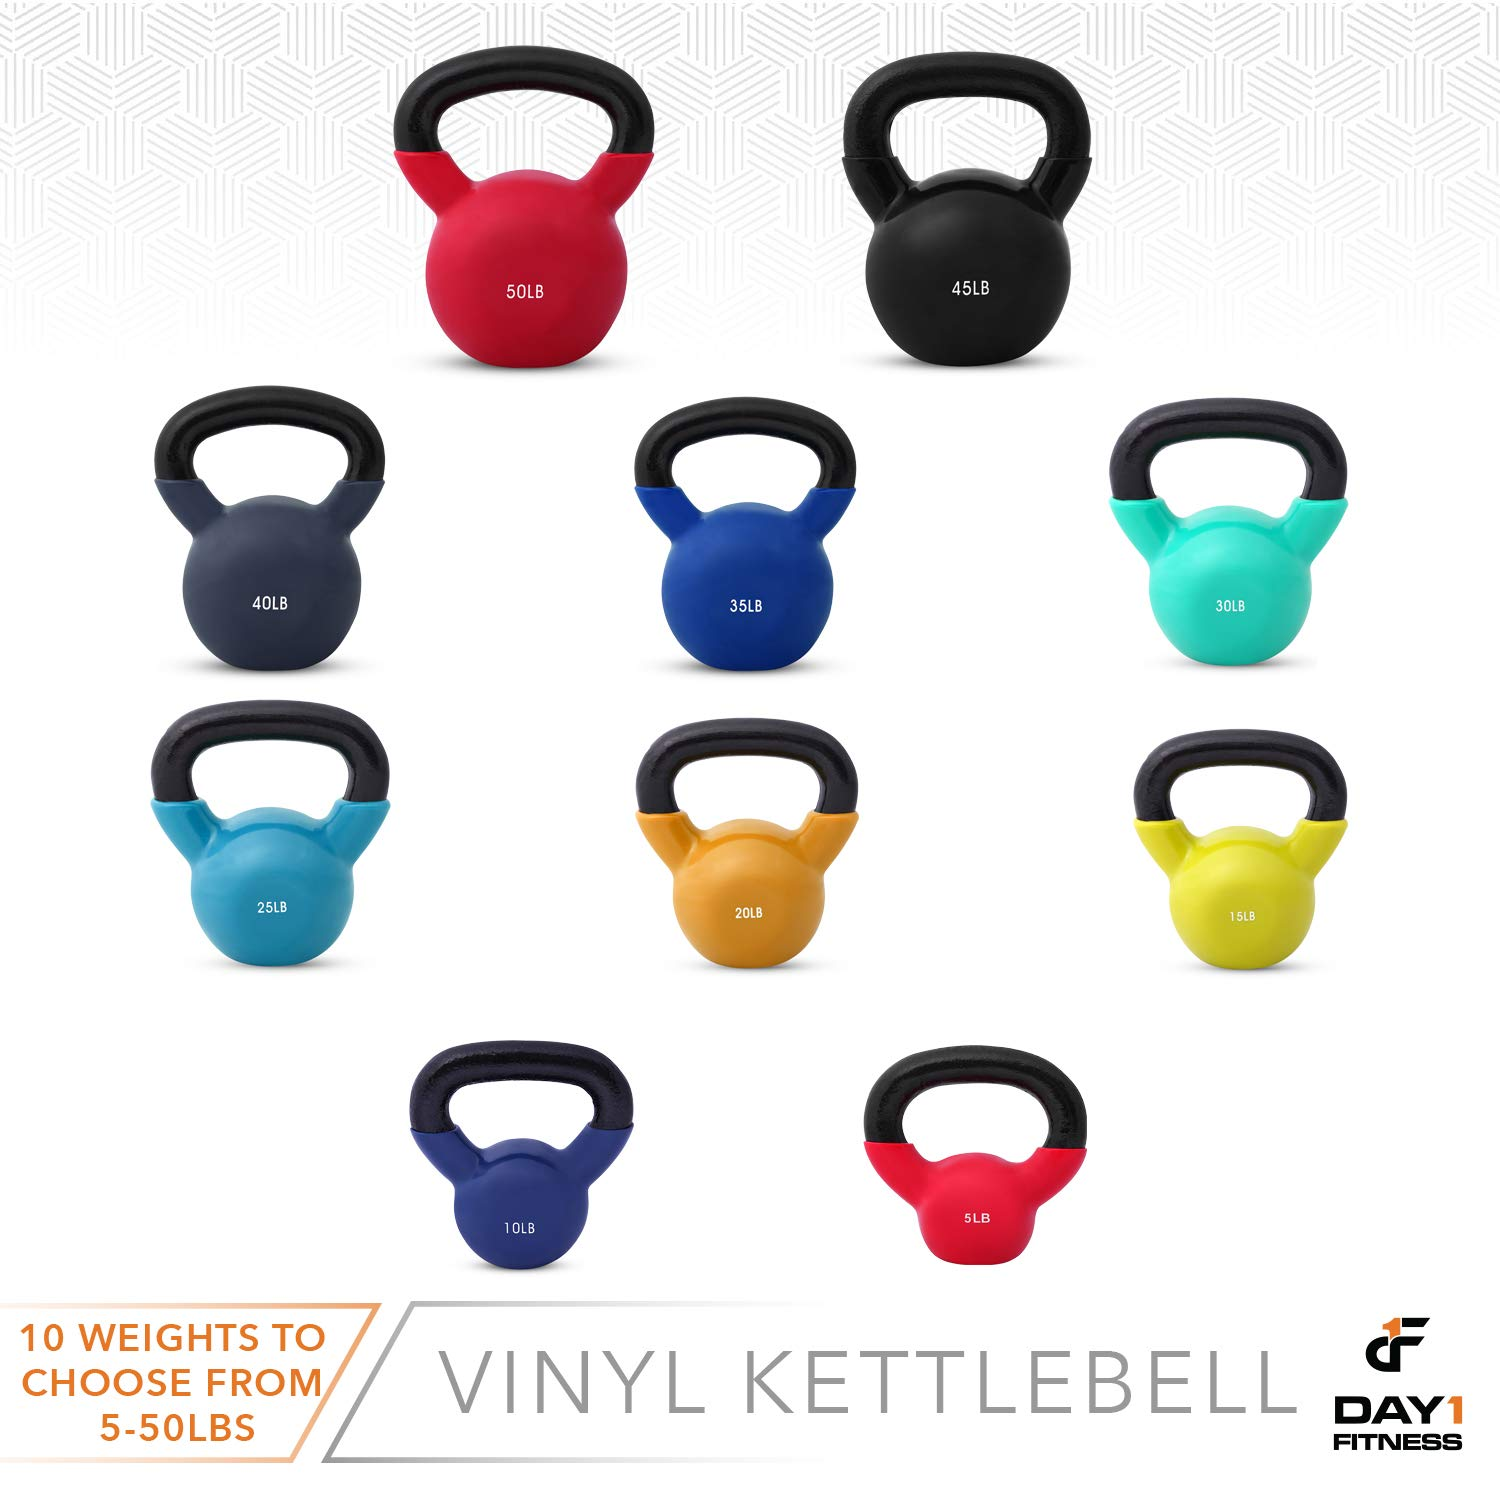 Day 1 Fitness Kettlebell Weights Vinyl Coated Iron 30 Pounds - Coated for Floor and Equipment Protection, Noise Reduction - Free Weights for Ballistic, Core, Weight Training by Day 1 Fitness (Image #8)